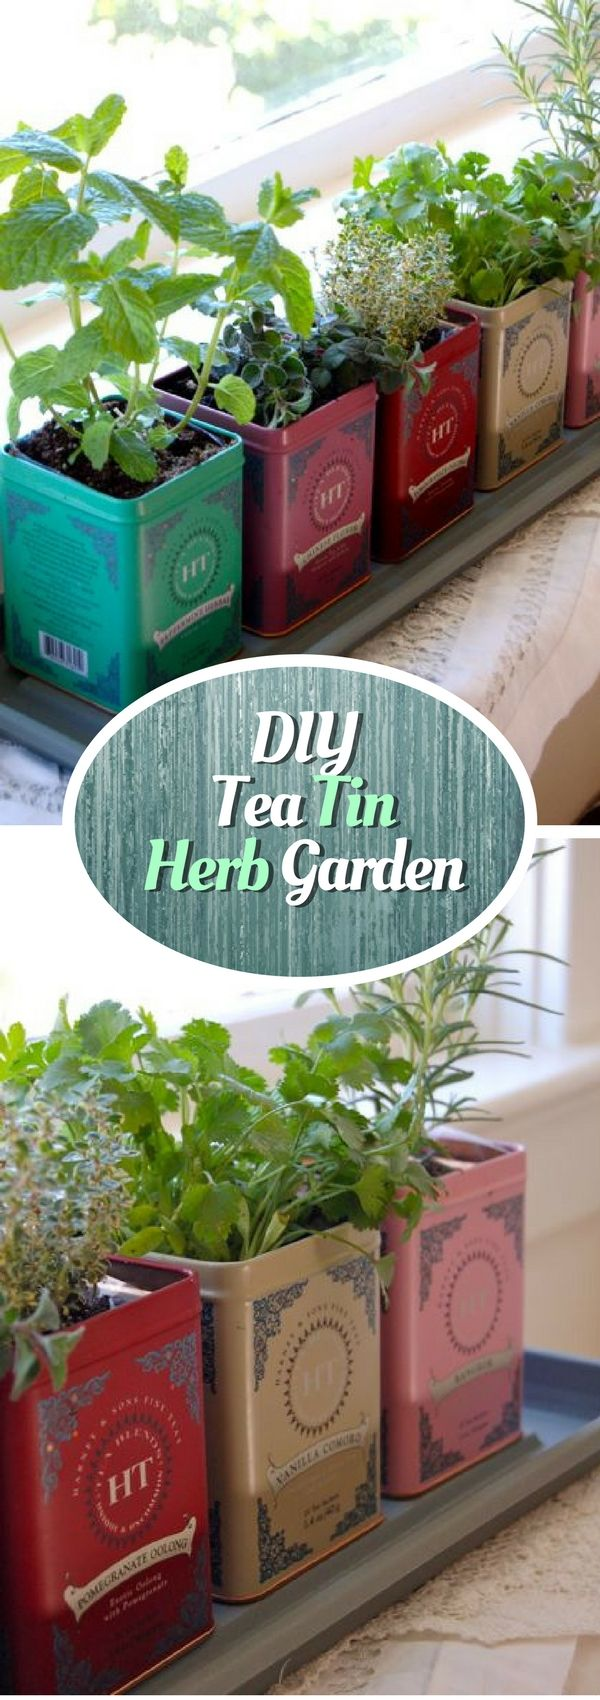 15 cool diy ways to start an indoor herb garden - Diy Herb Garden Ideas